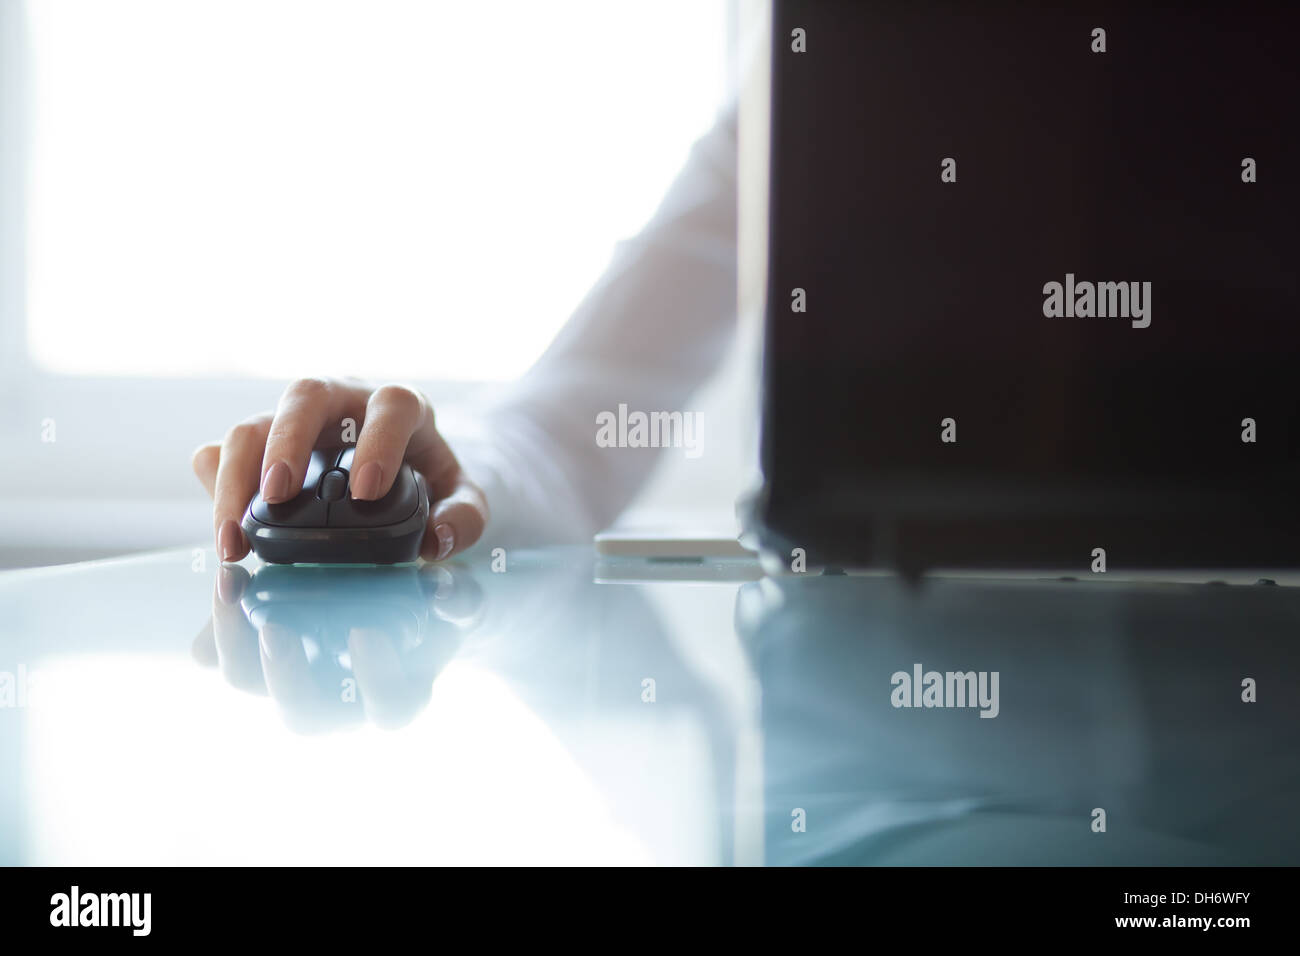 Woman's hand using cordless mouse on glass table Stock Photo